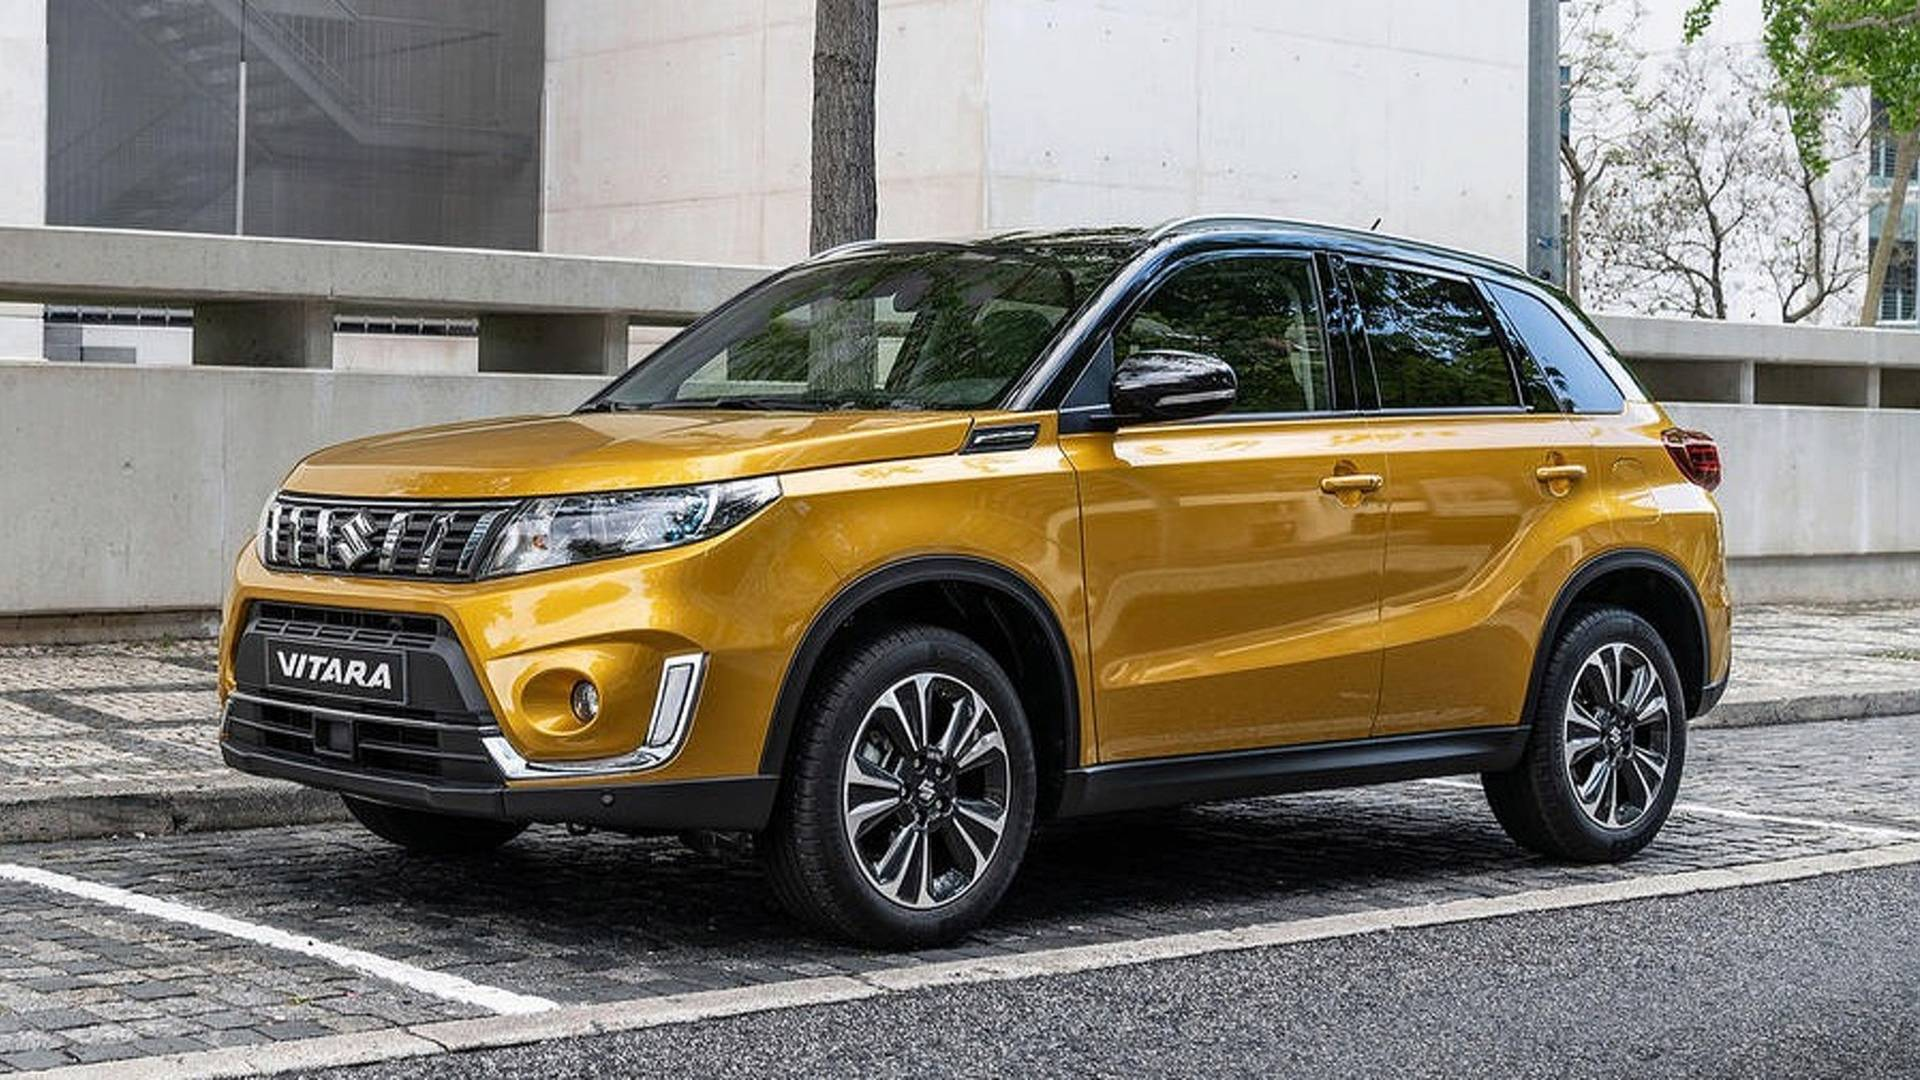 2019 Suzuki Vitara SUV Launched